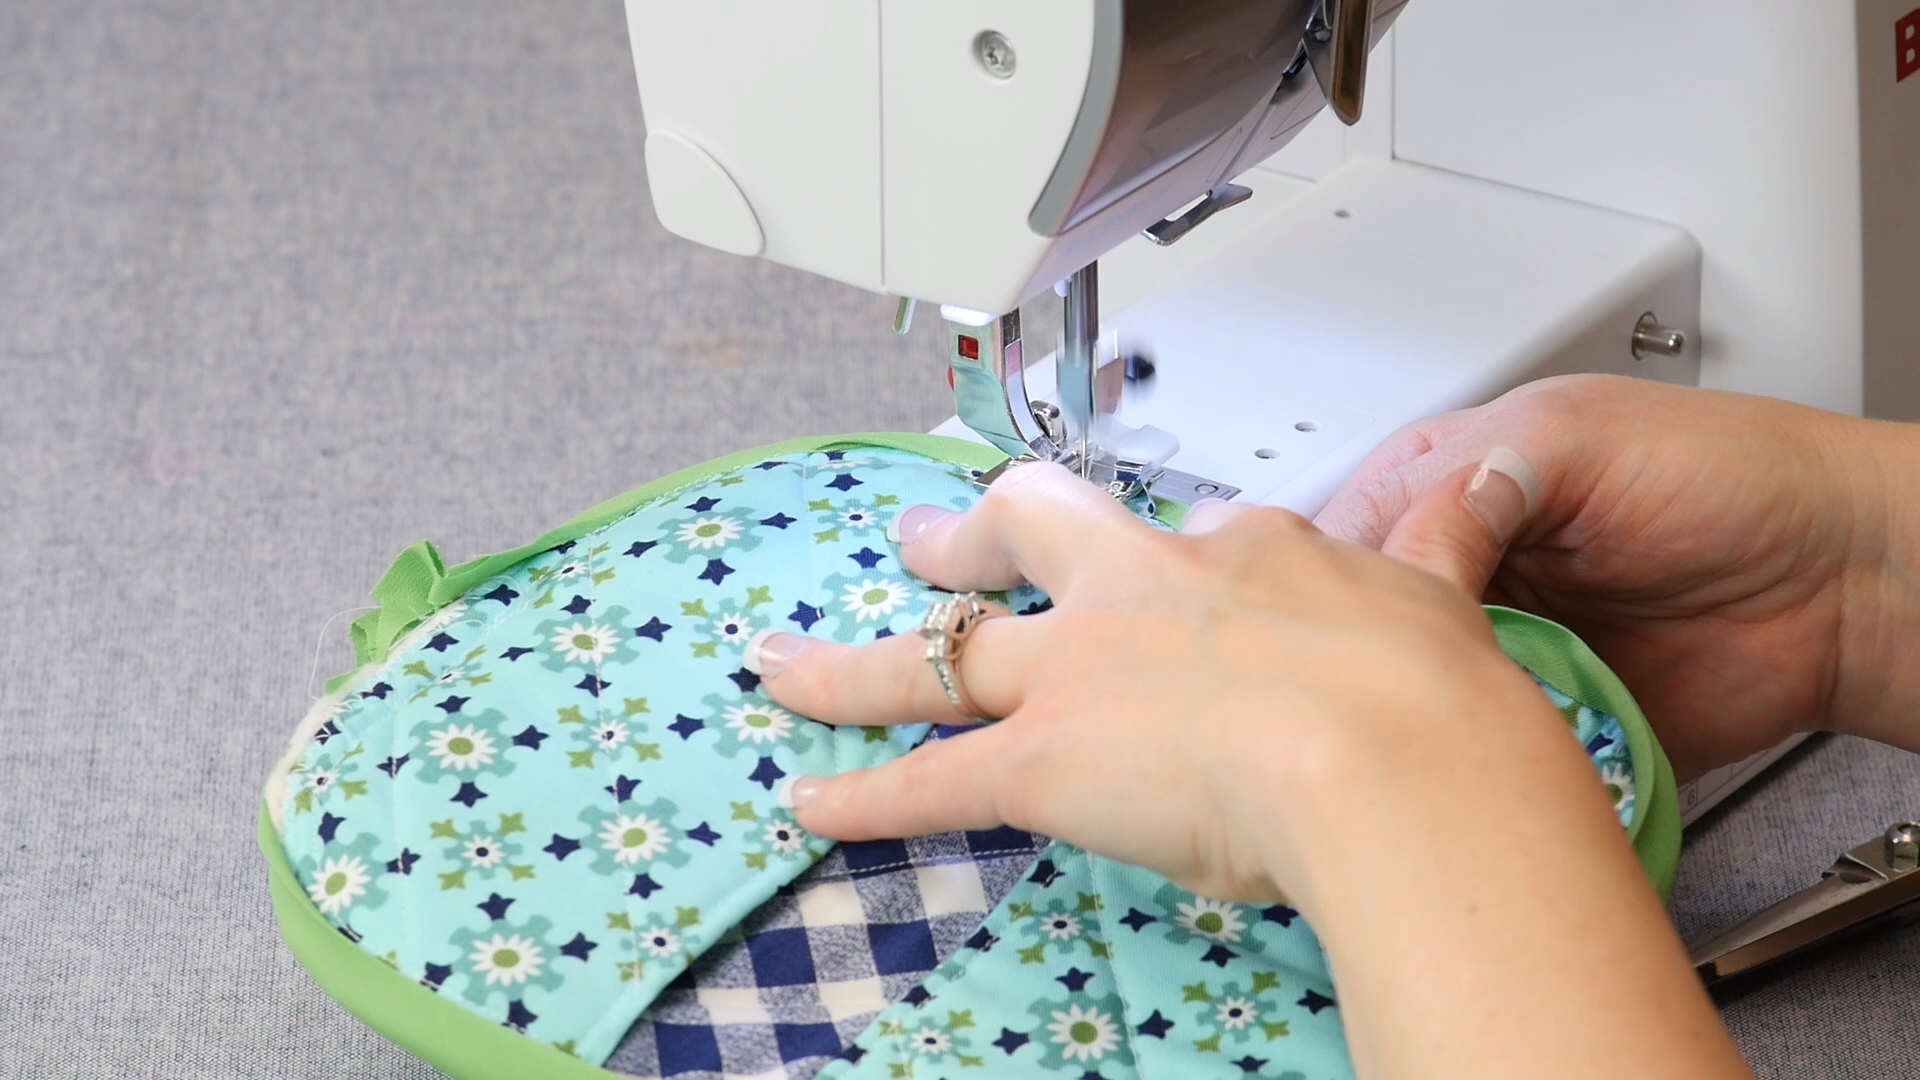 DIY Quilted Potholder (Video) -   22 simple fabric crafts Videos ideas